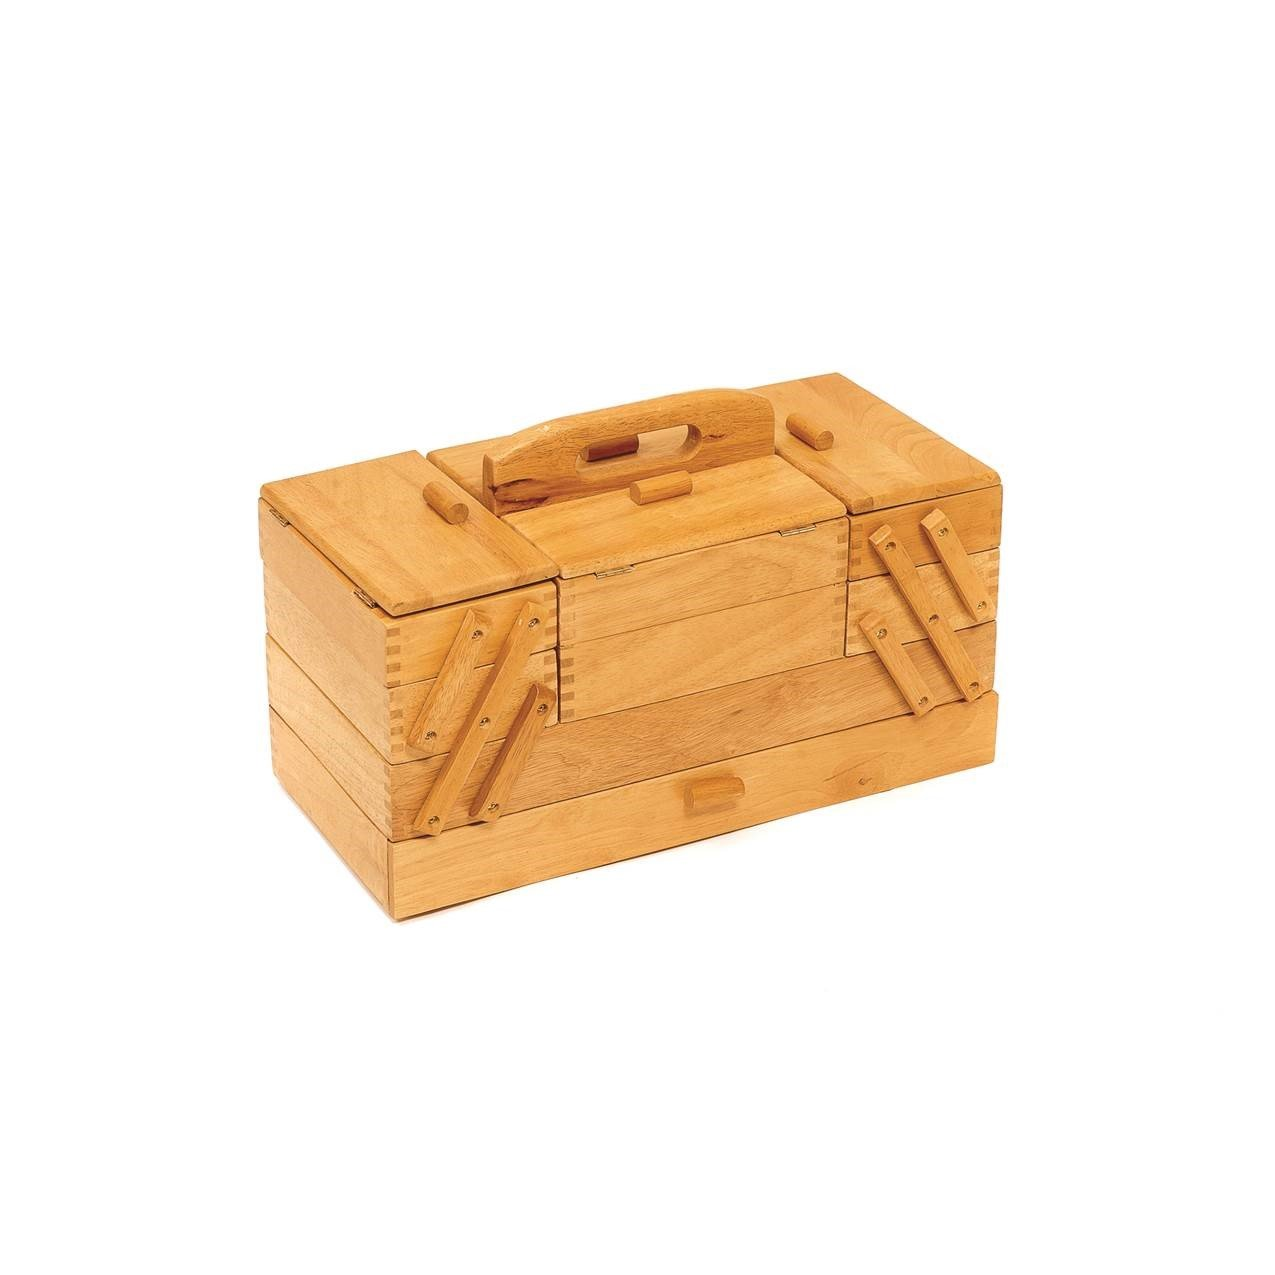 HobbyGift GB9590 Vintage Wood Cantilever Sewing Storage Box 23½ x 45 x 32cm Groves